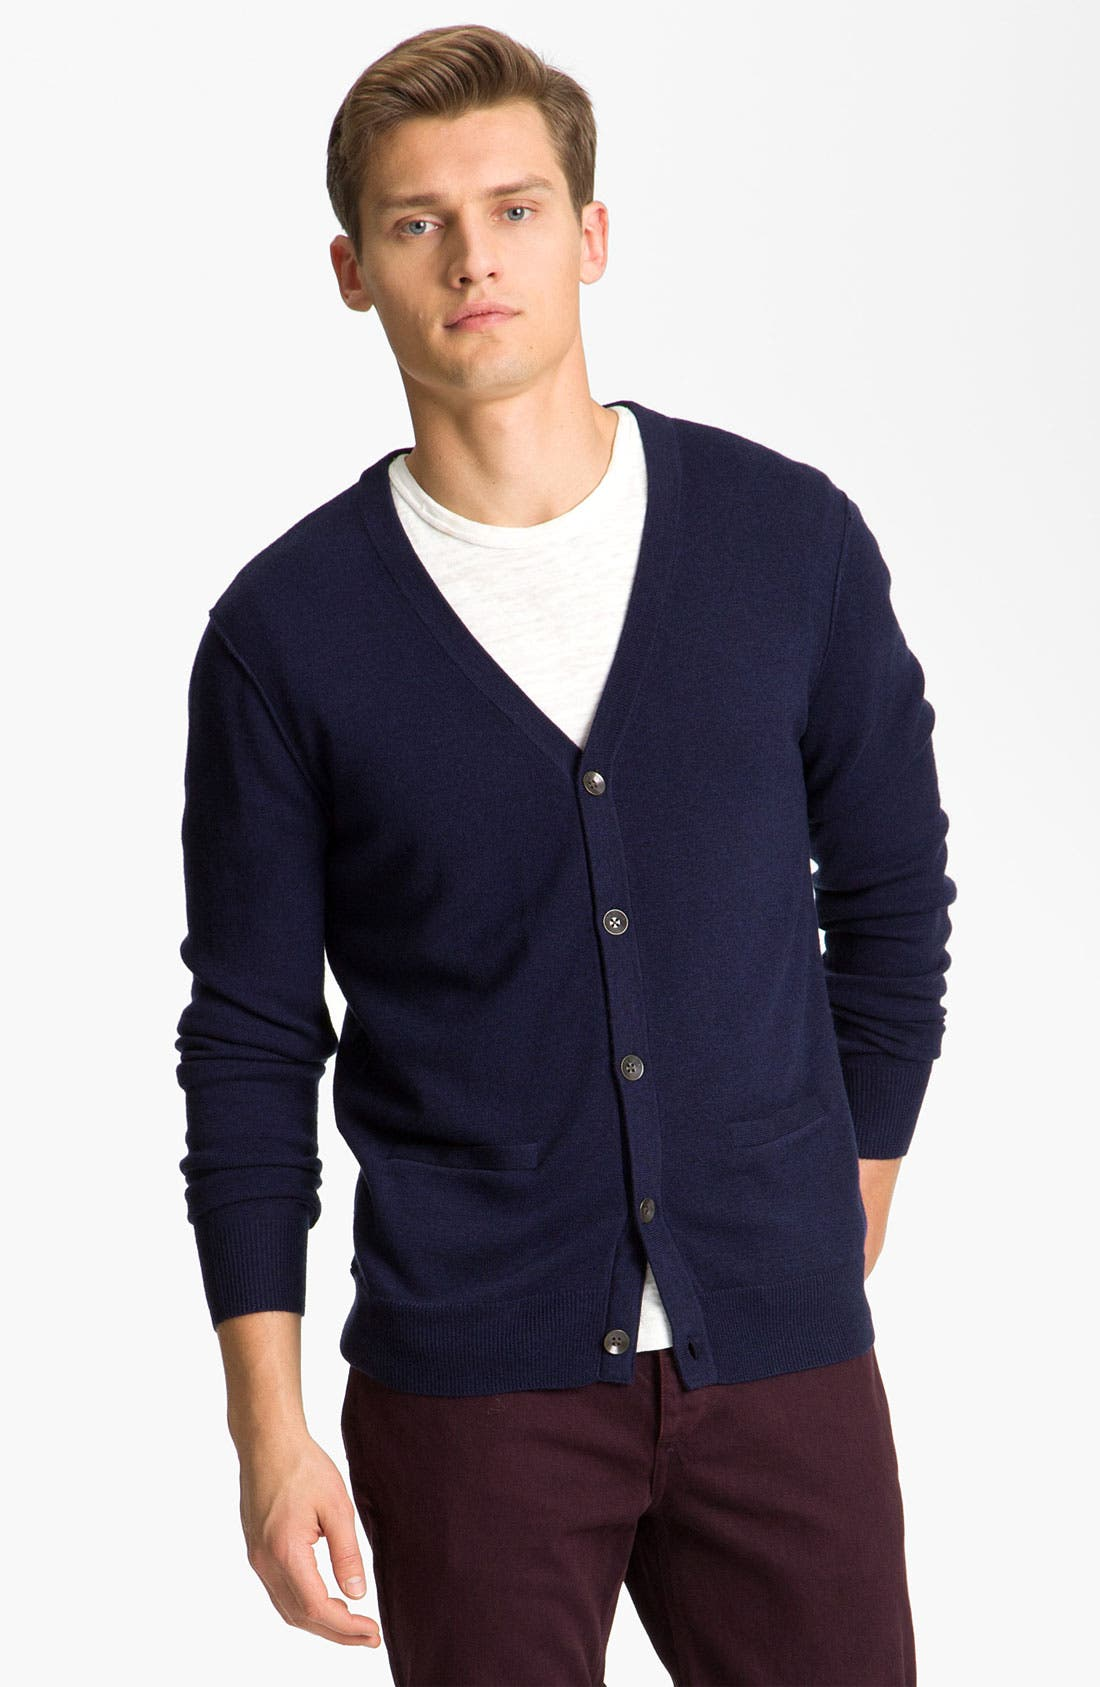 Alternate Image 1 Selected - rag & bone 'Abingdon' Wool Cardigan